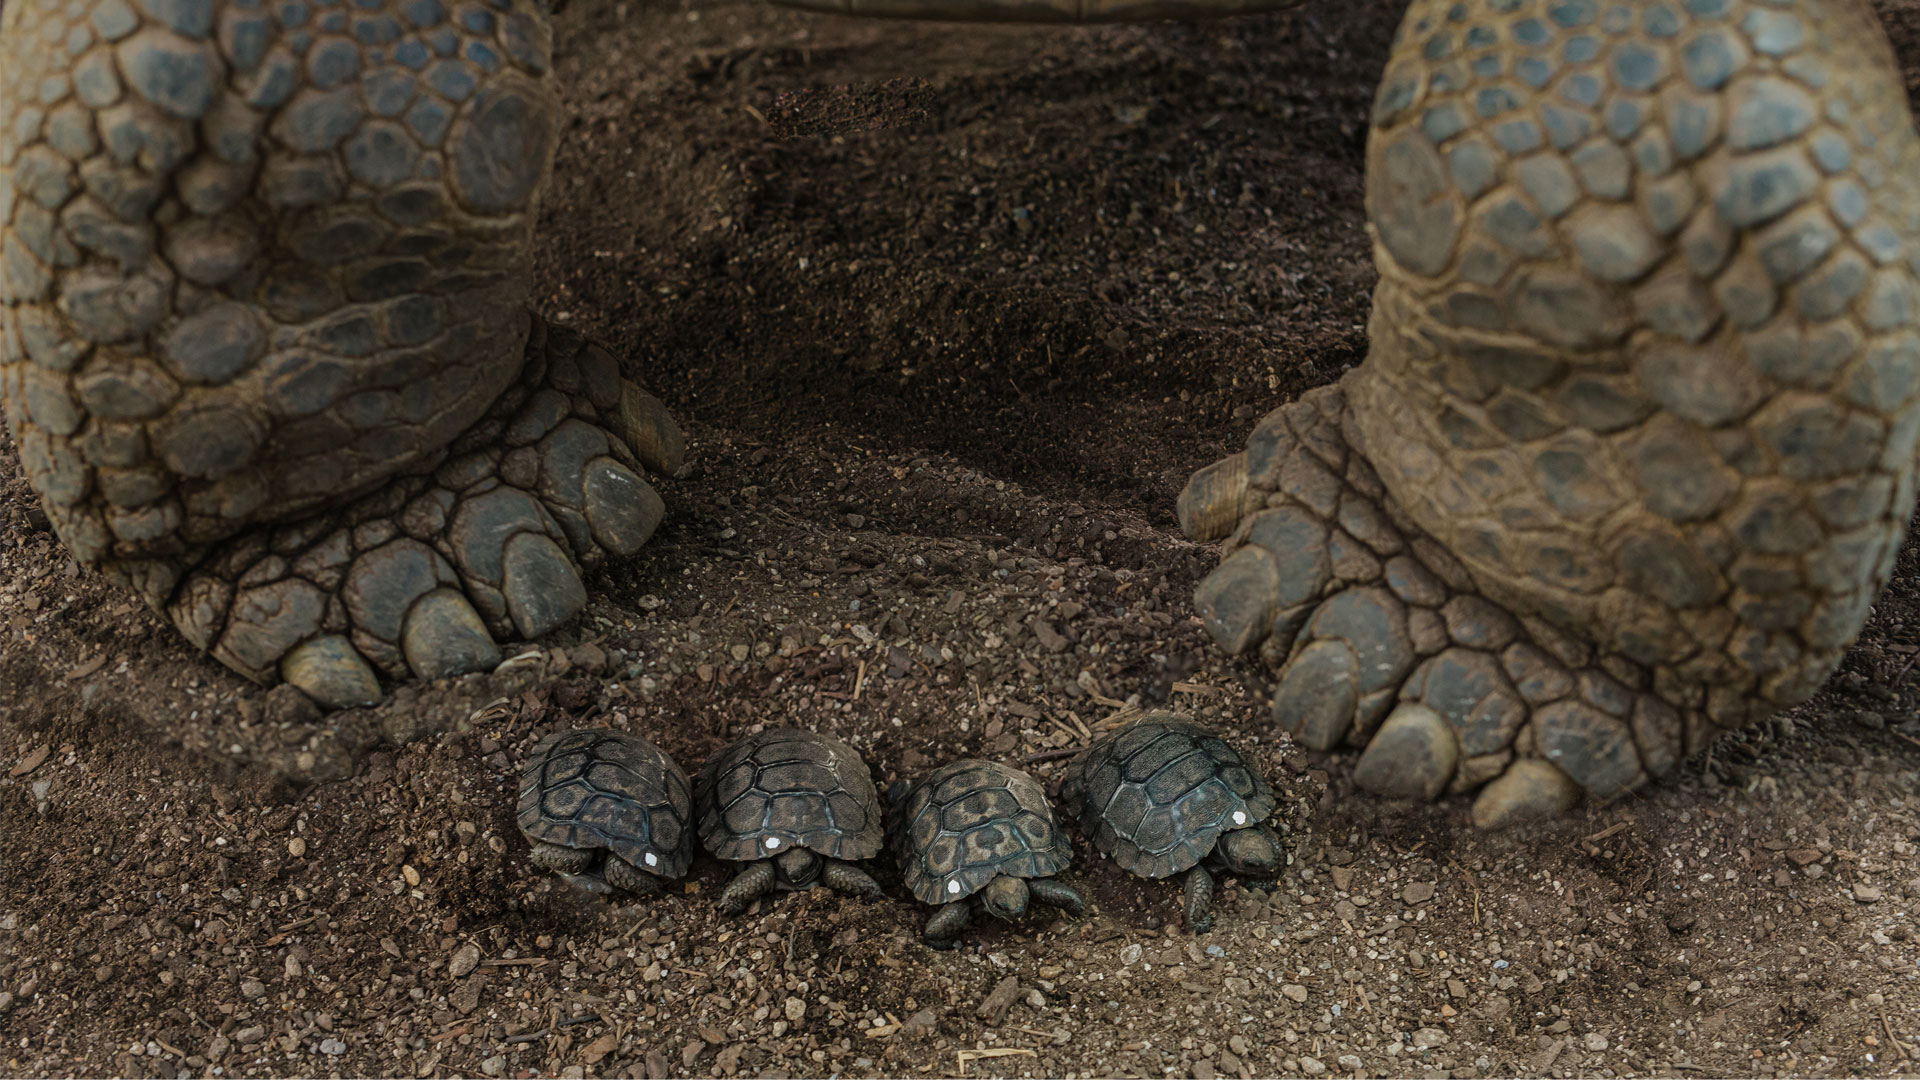 https://rfacdn.nz/zoo/assets/media/galapagos-tortoise-hatchlings-gallery-6.jpg